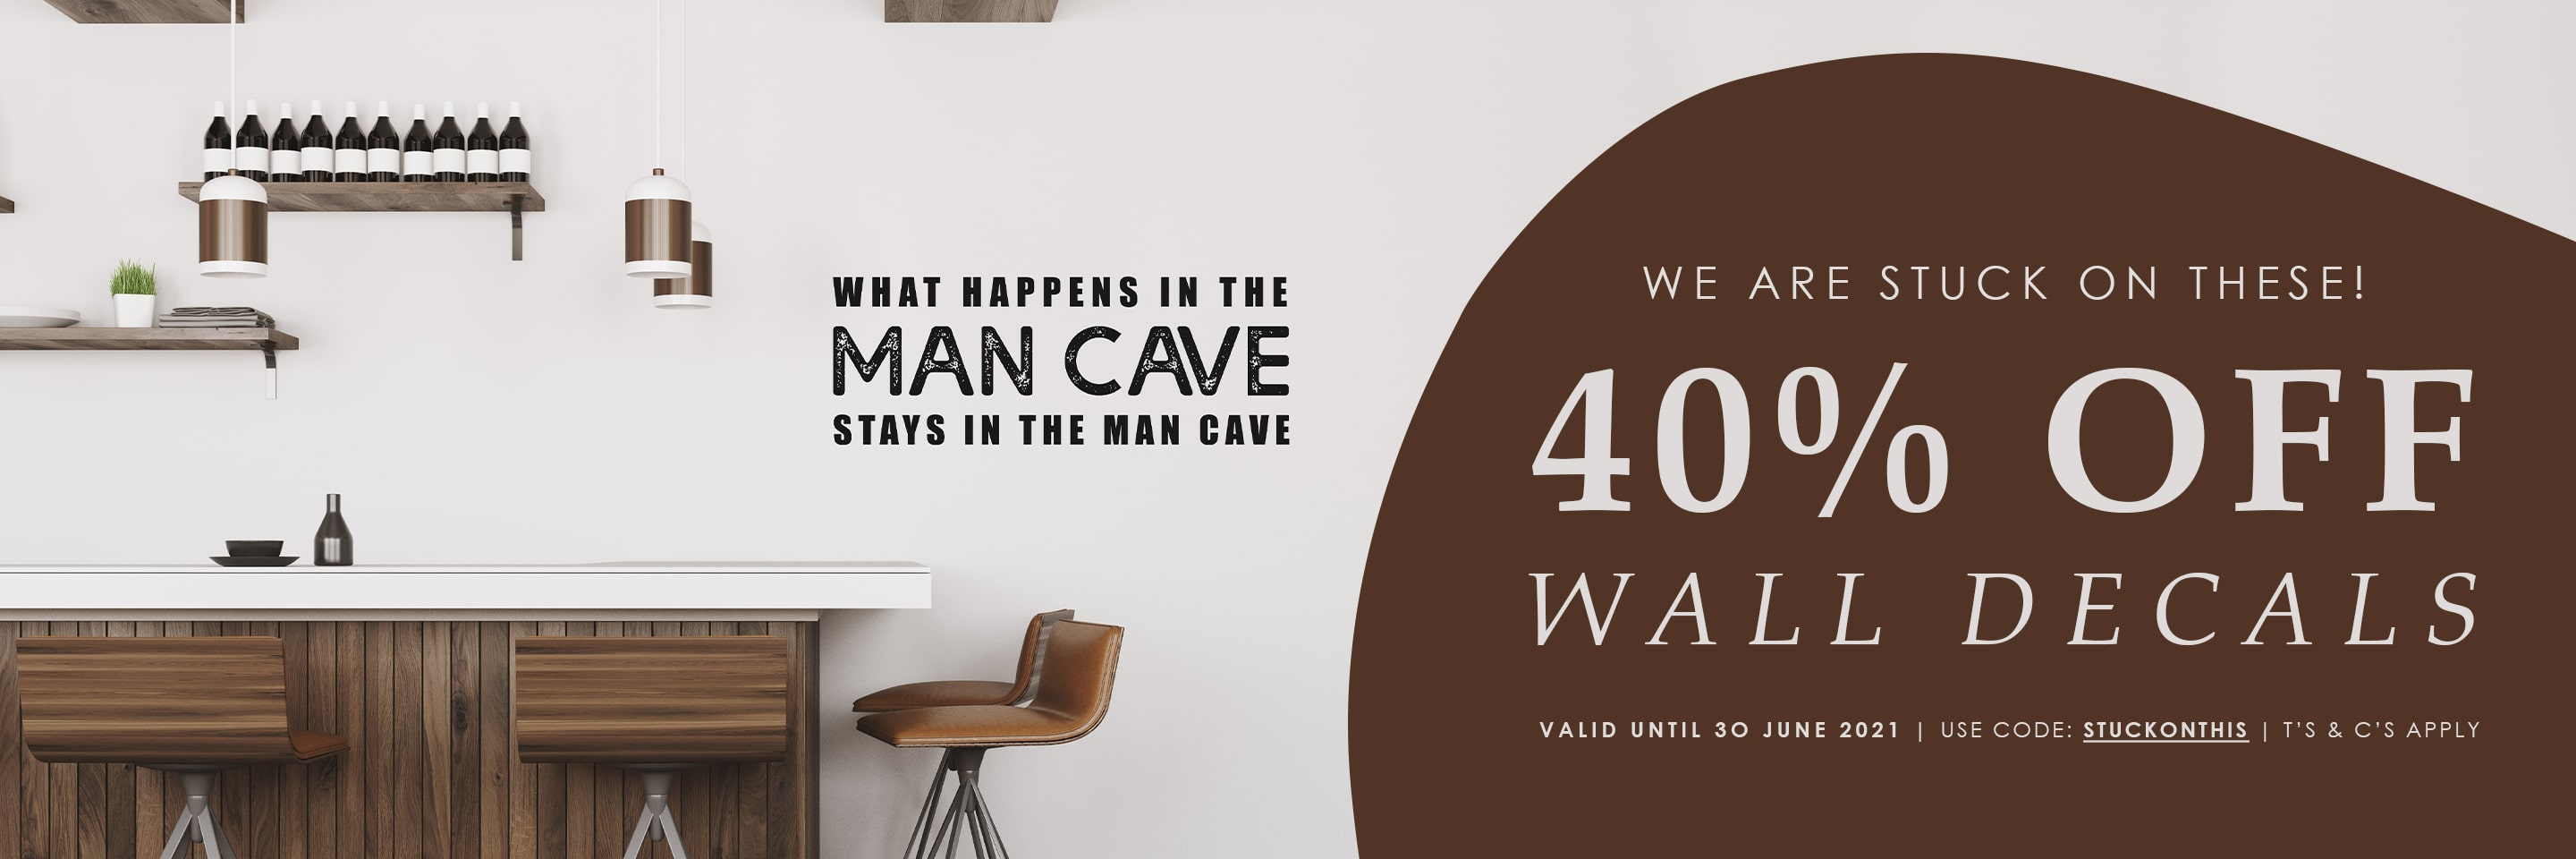 Wall Decals Promotion